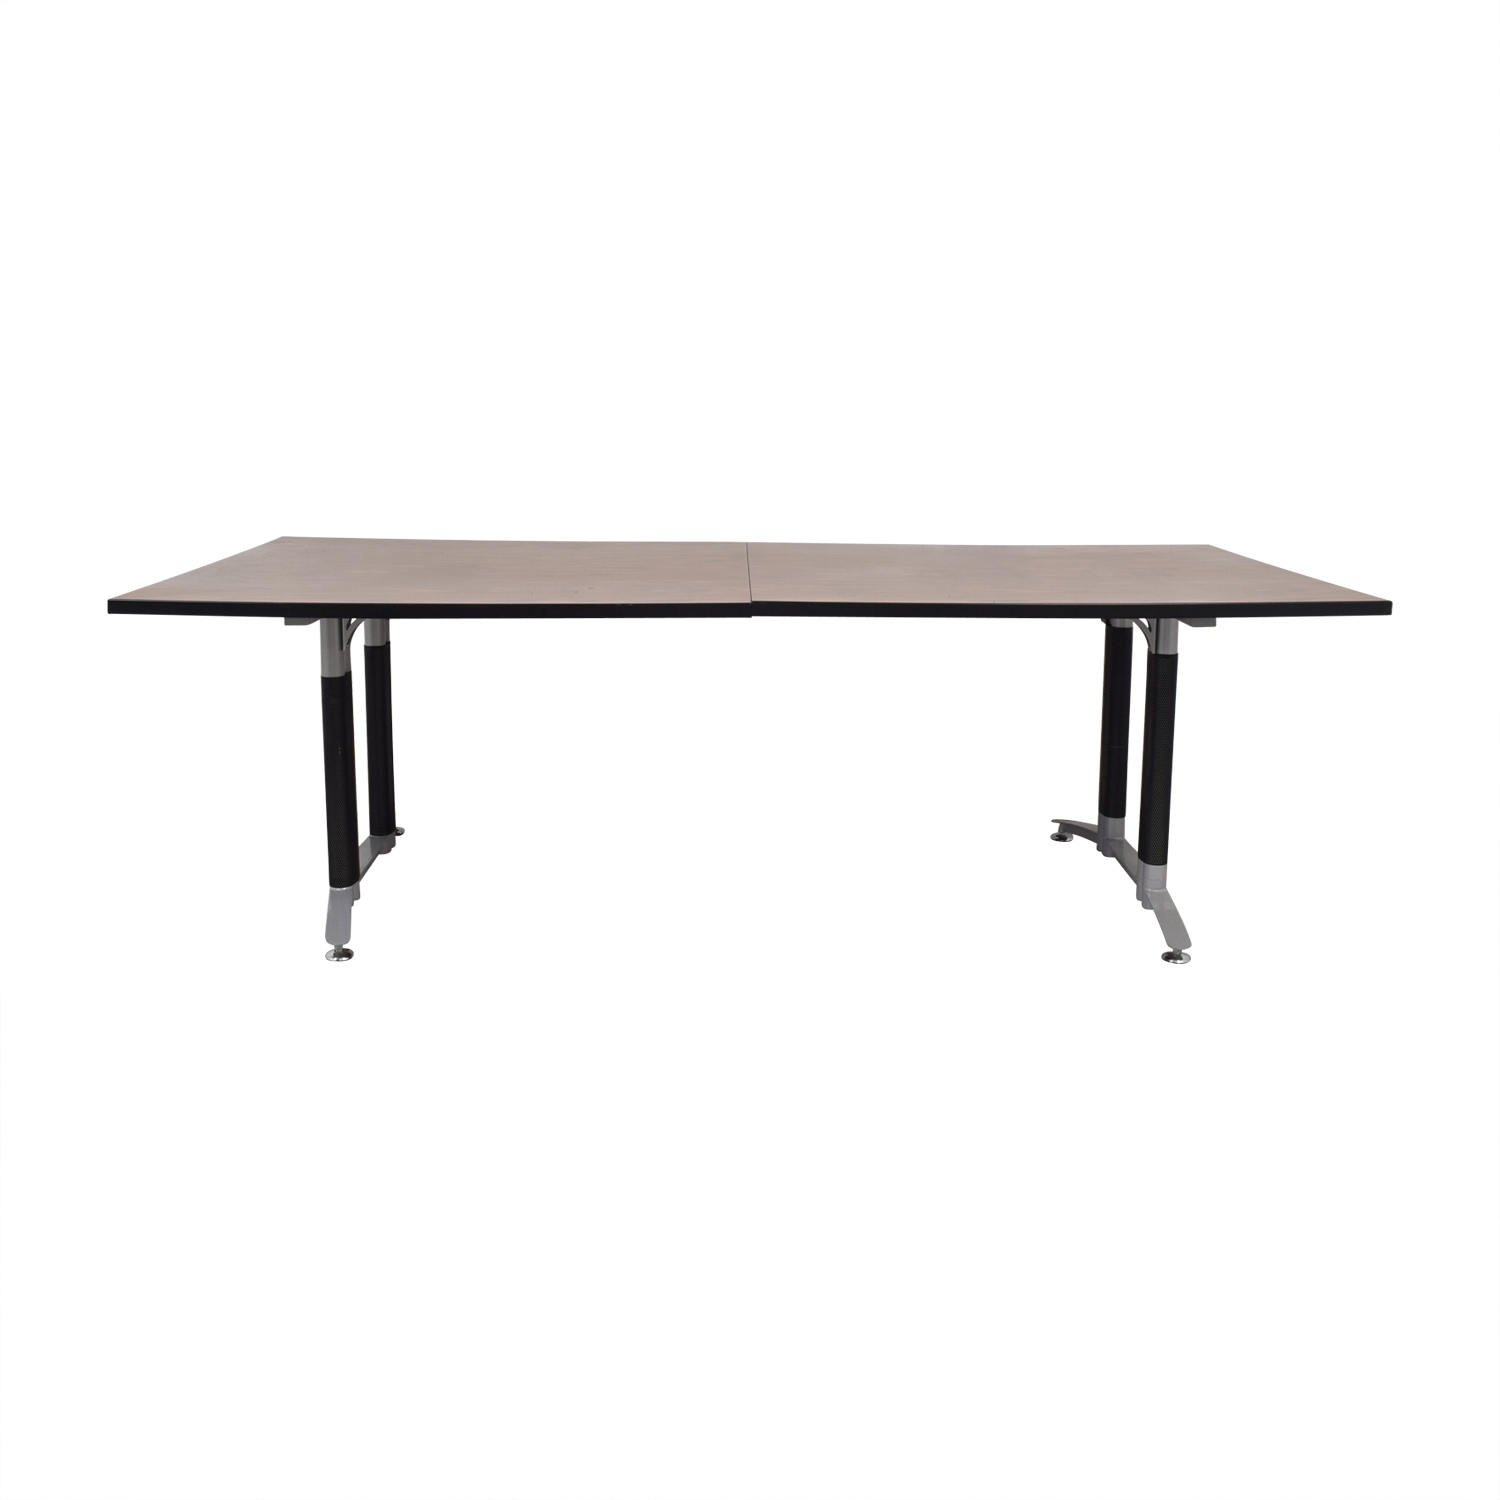 buy  Office Conference Room Table online